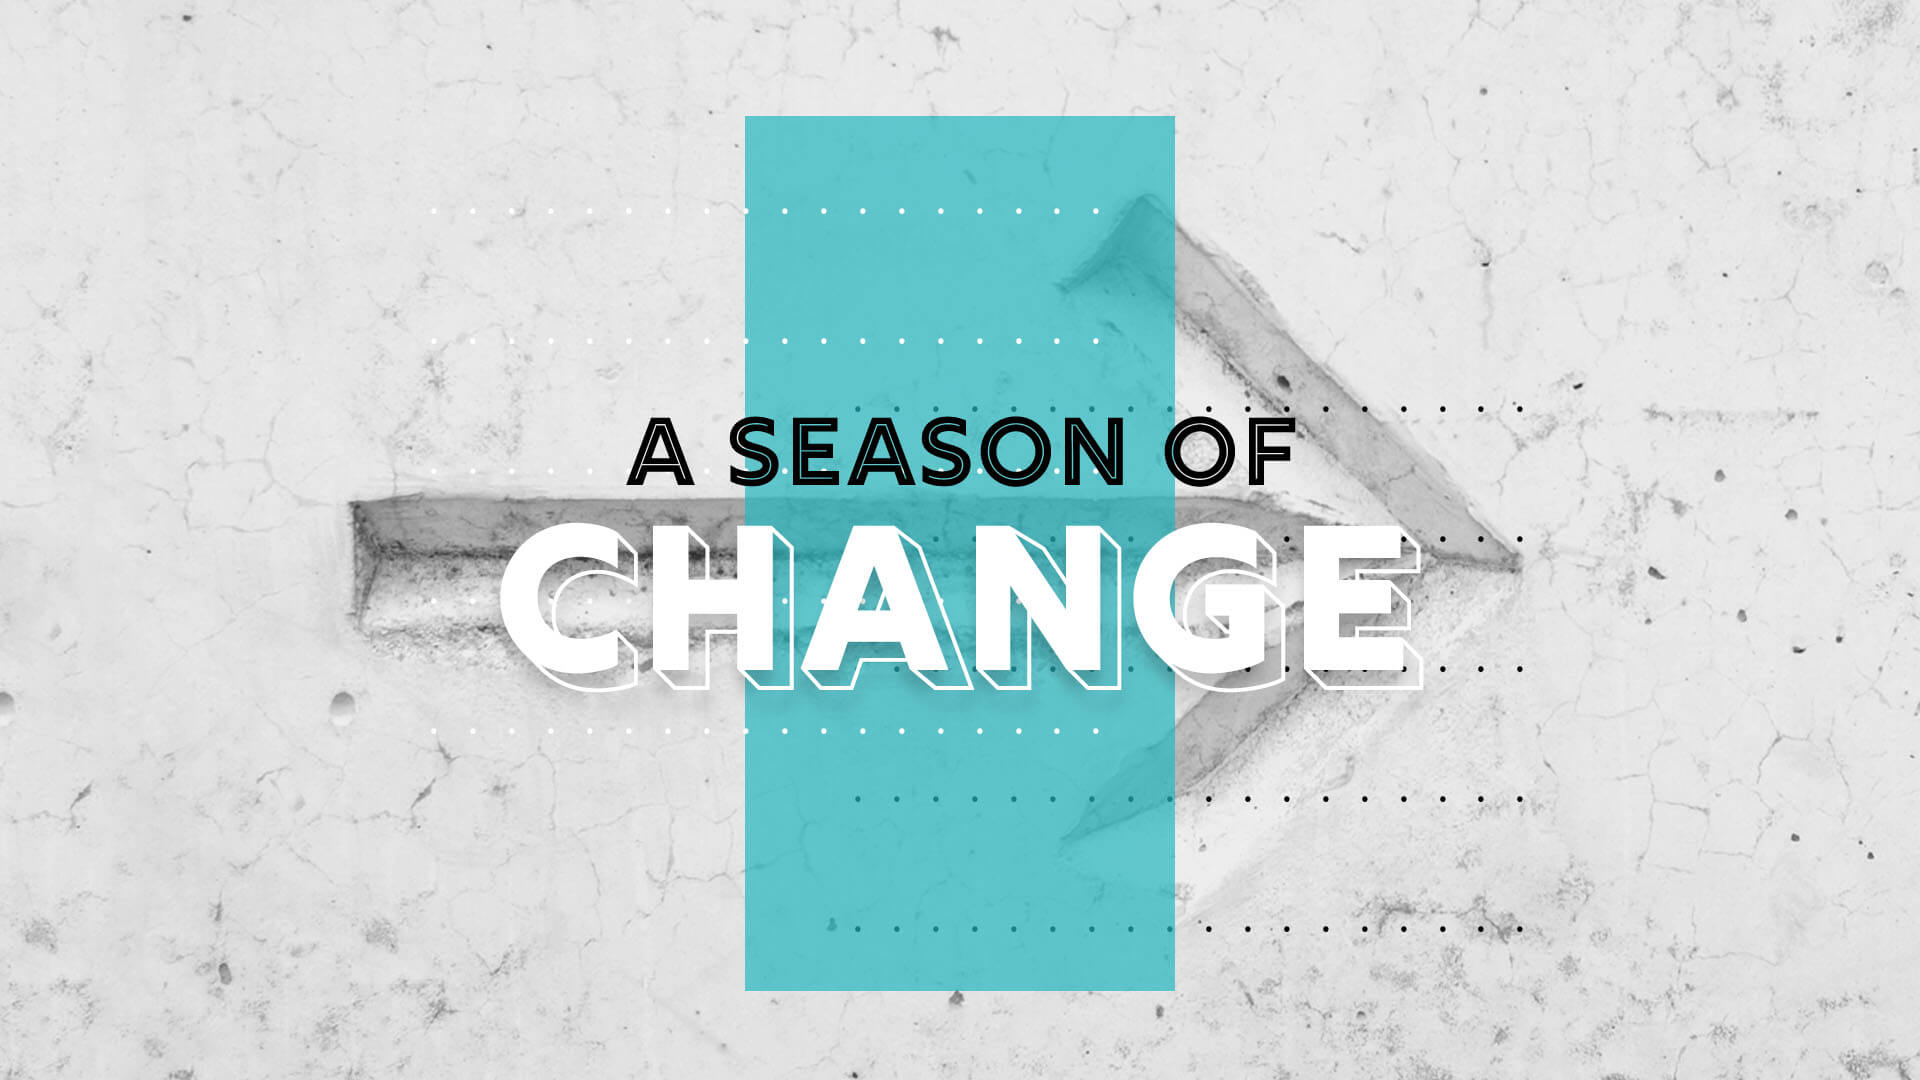 A Season of Change - Title.jpg